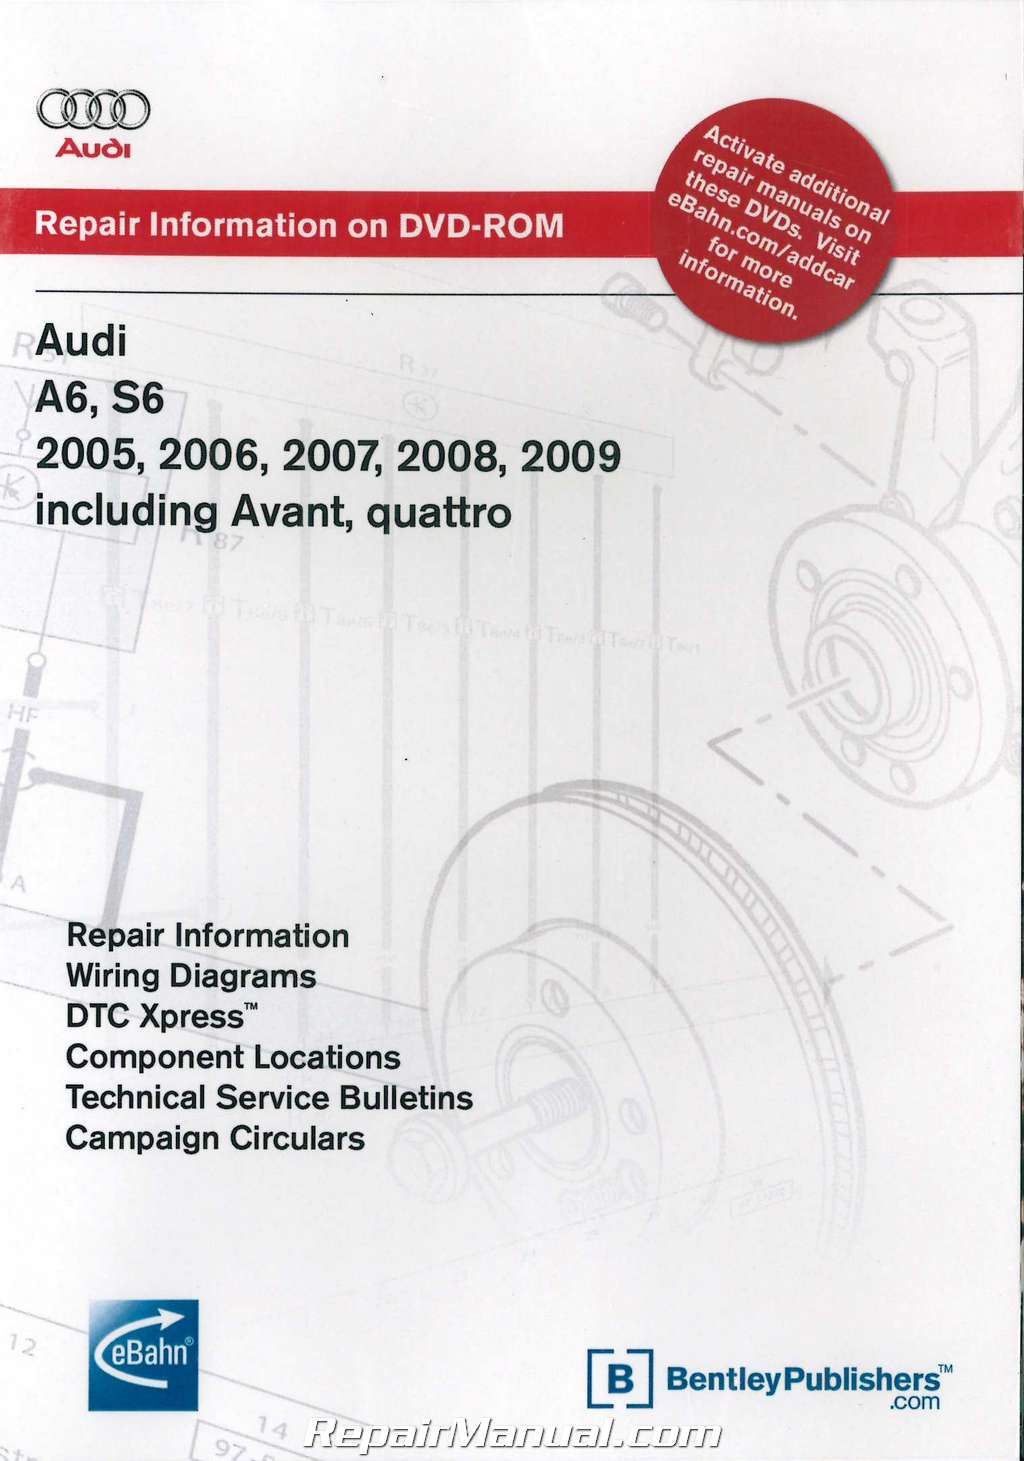 Audi A6 S6 2005-2009 including 2005-2006 Avant quattro Repair Manual DVD-ROM